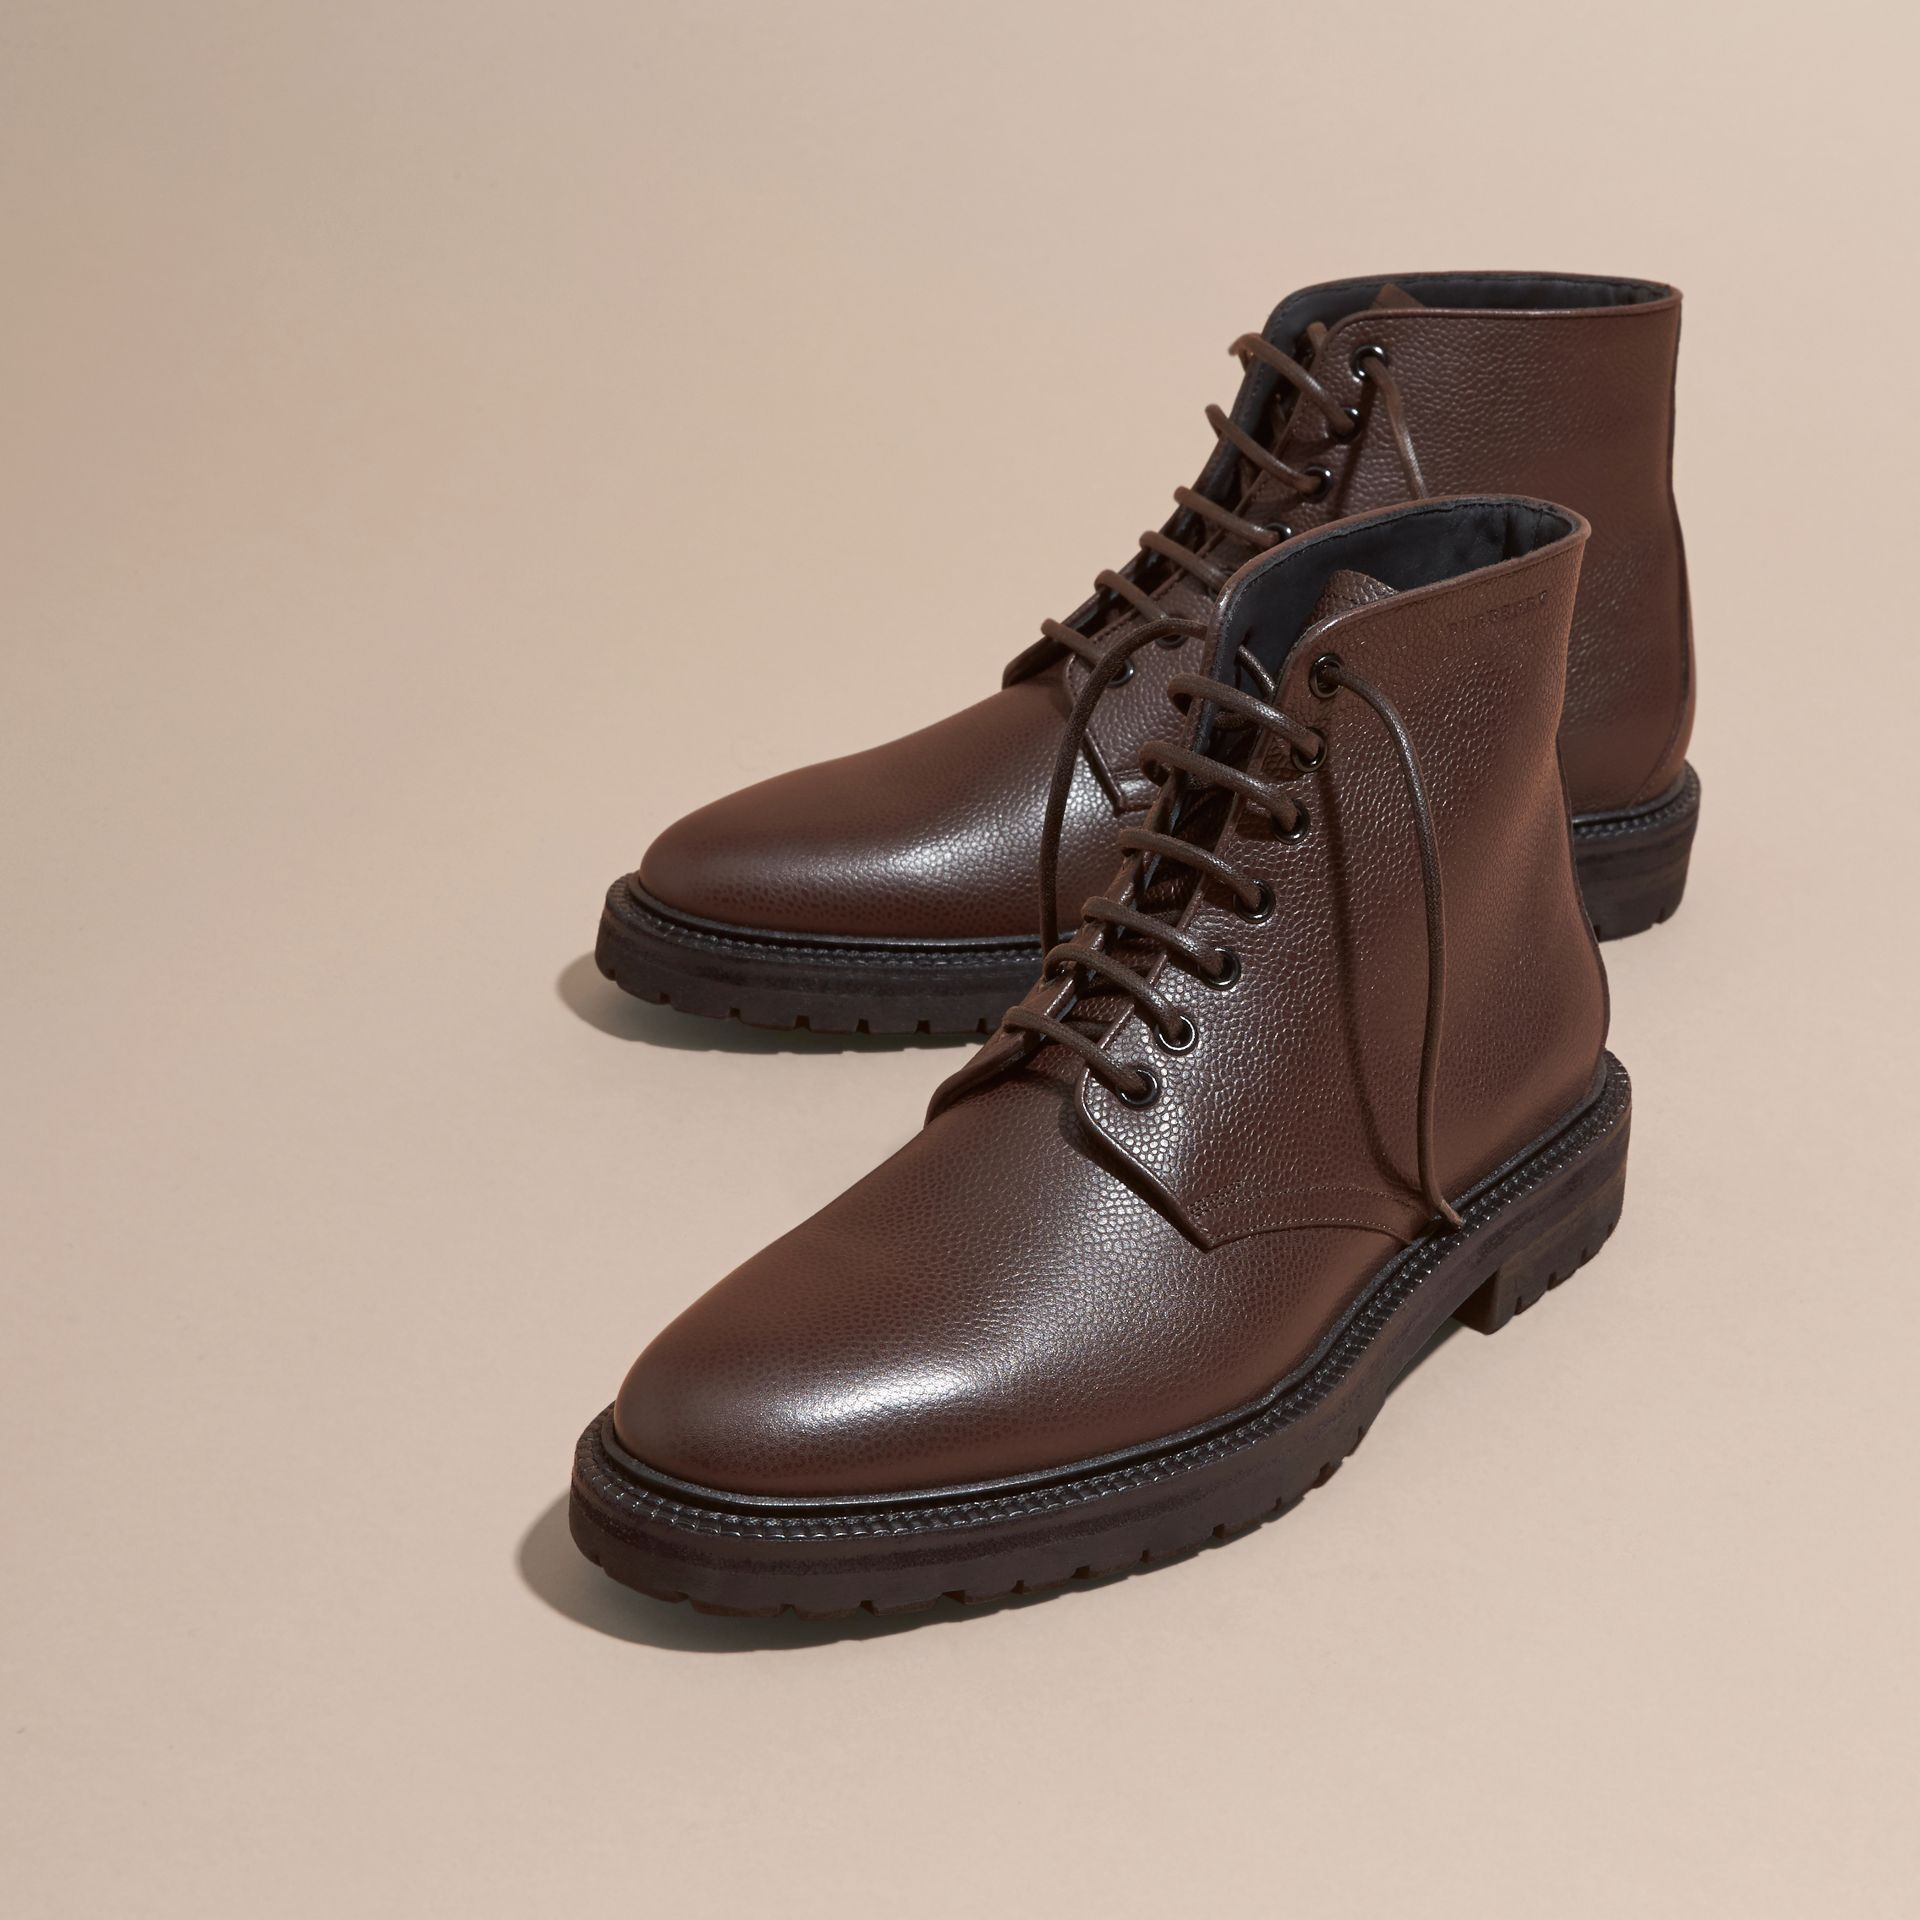 Chestnut Lace-up Grainy Leather Boots Chestnut - gallery image 3